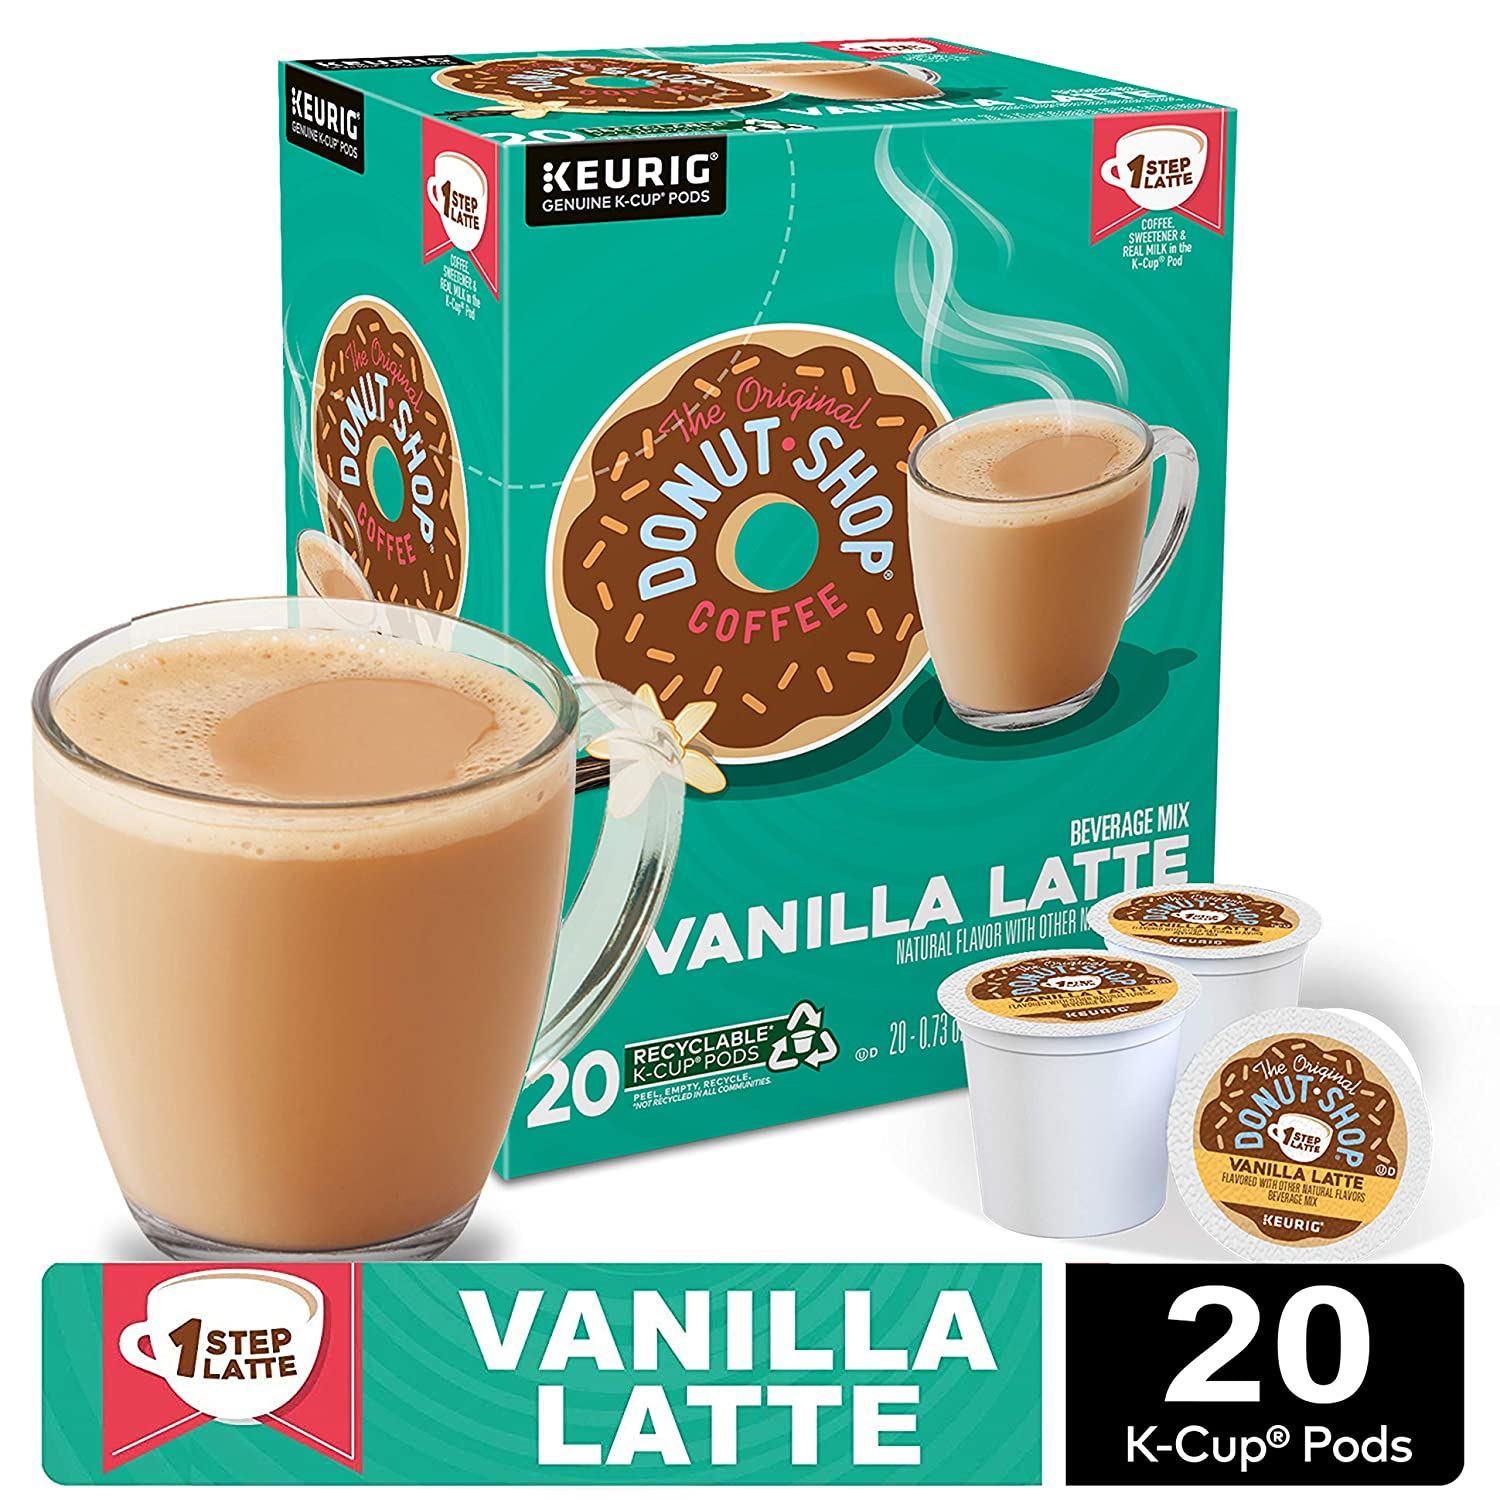 The Original Donut Shop Vanilla Latte, Single-Serve Coffee K Cup Pods, Flavored Coffee, 20Count